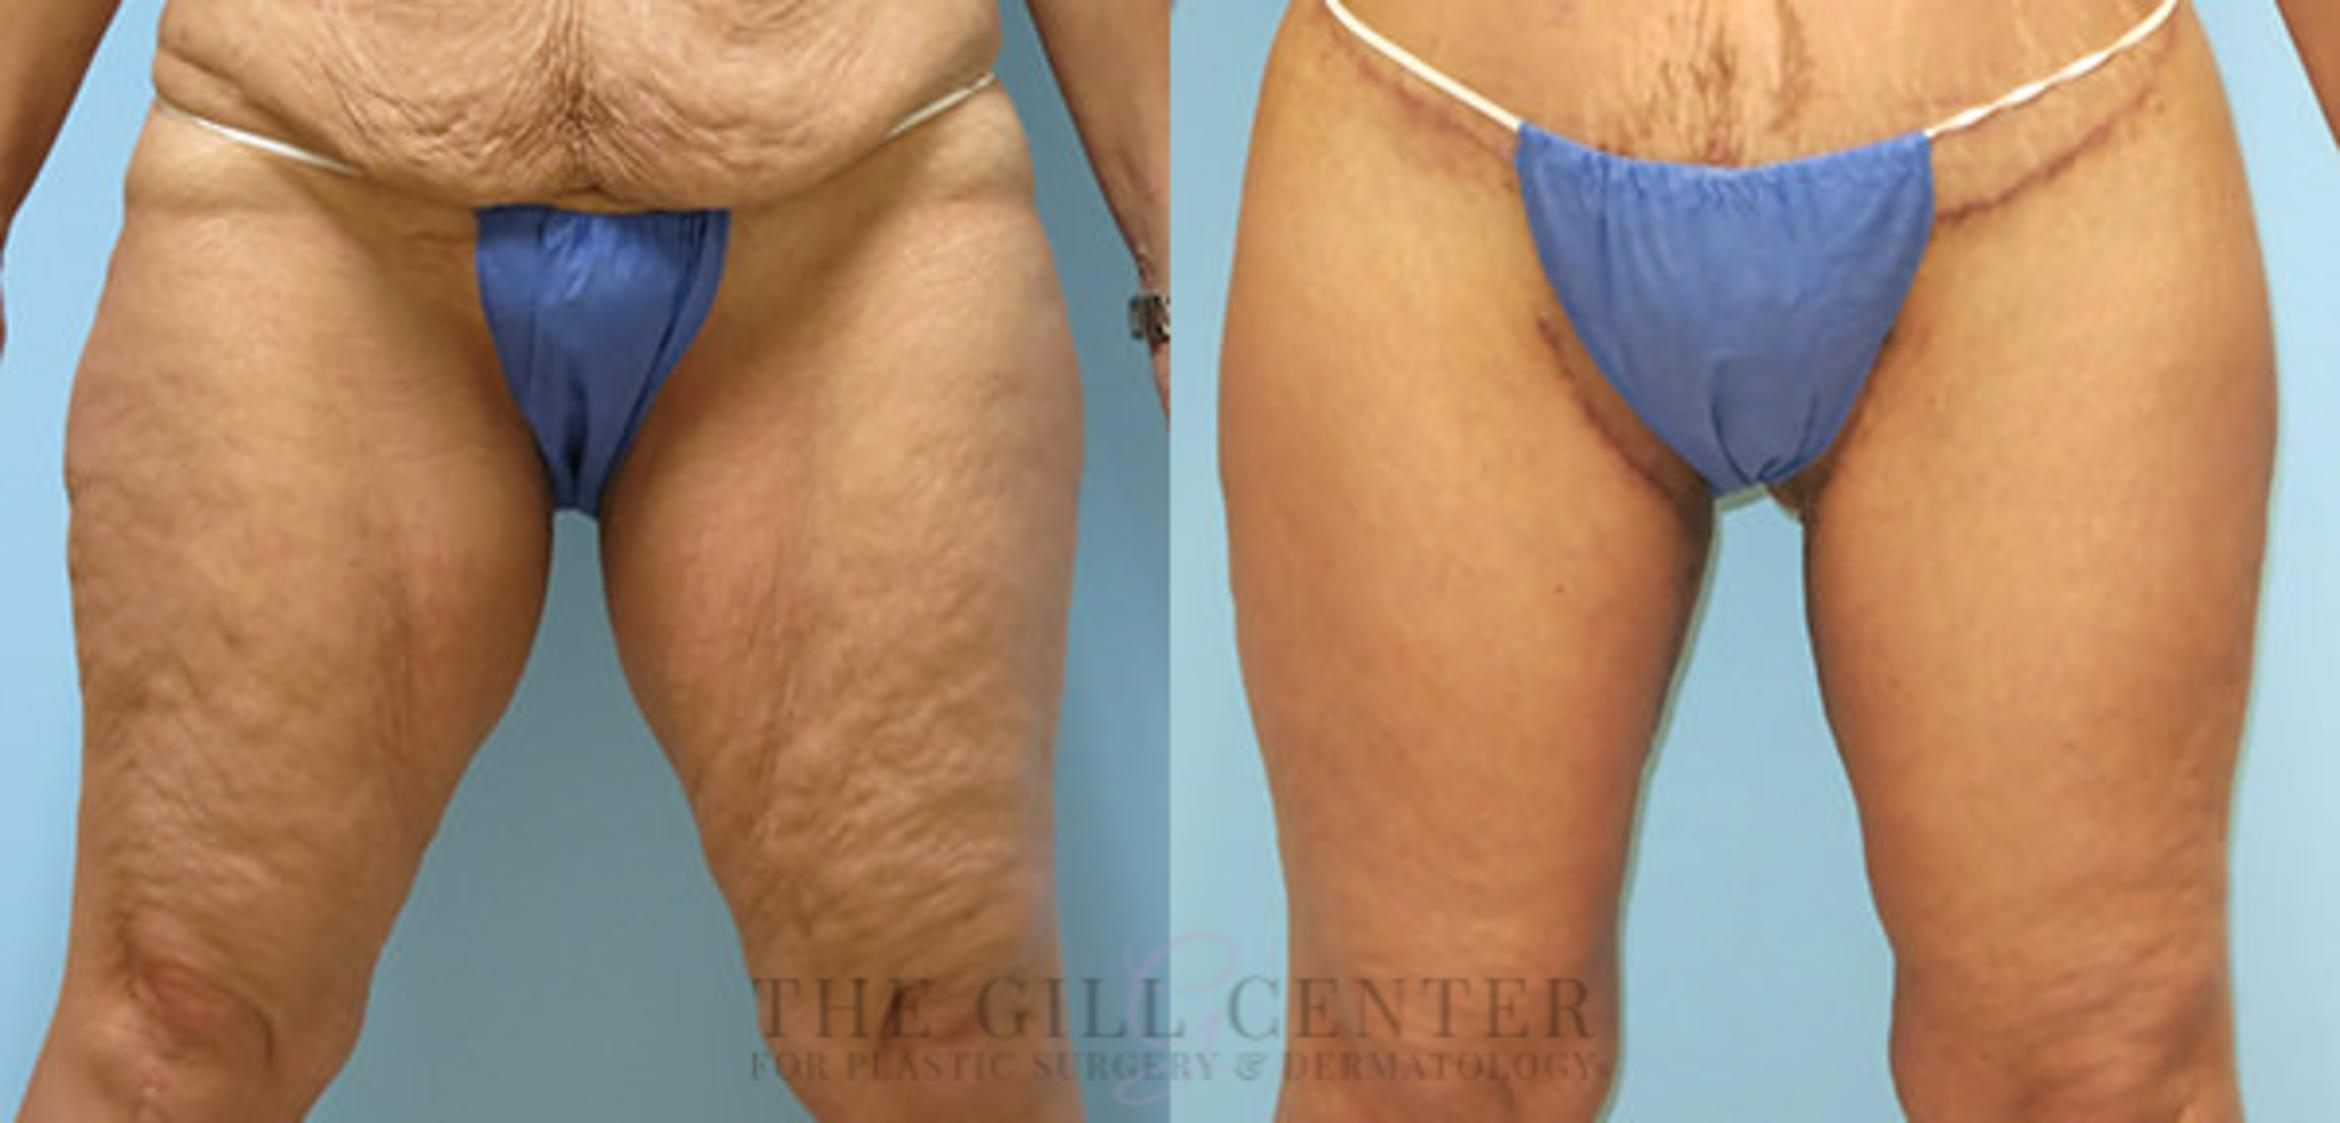 Thigh Lift Case 172 Before & After Front | Shenandoah, TX | The Gill Center for Plastic Surgery and Dermatology